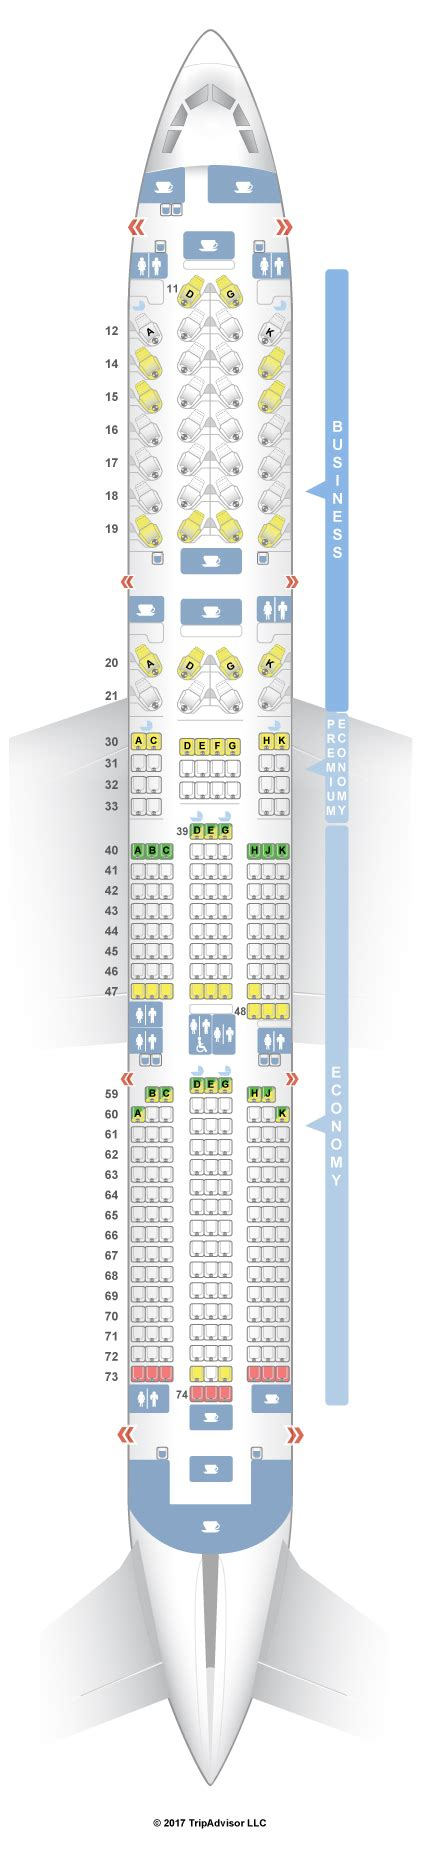 cathay pacific seat map seatguru seat map cathay pacific airbus a350 900 35g